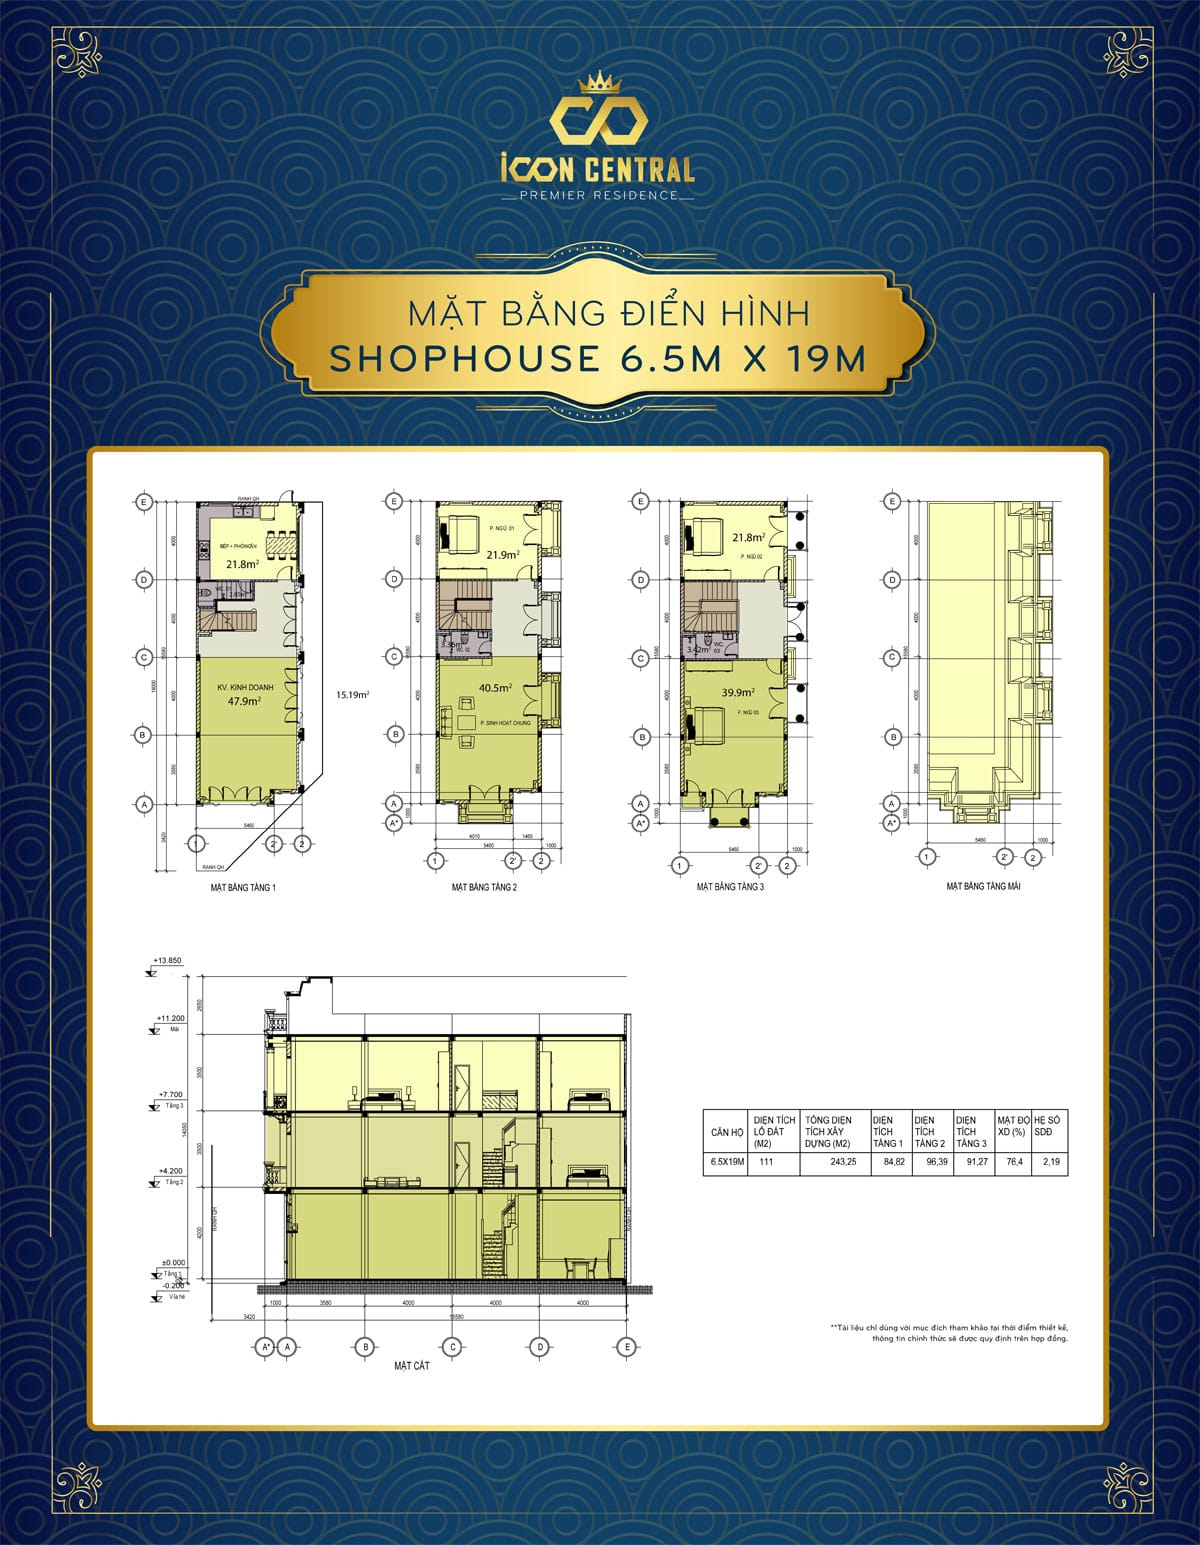 mat bang dien hinh shophouse 65 x 19m icon central - SHOP OFFICE ICON CENTRAL DĨ AN BÌNH DƯƠNG